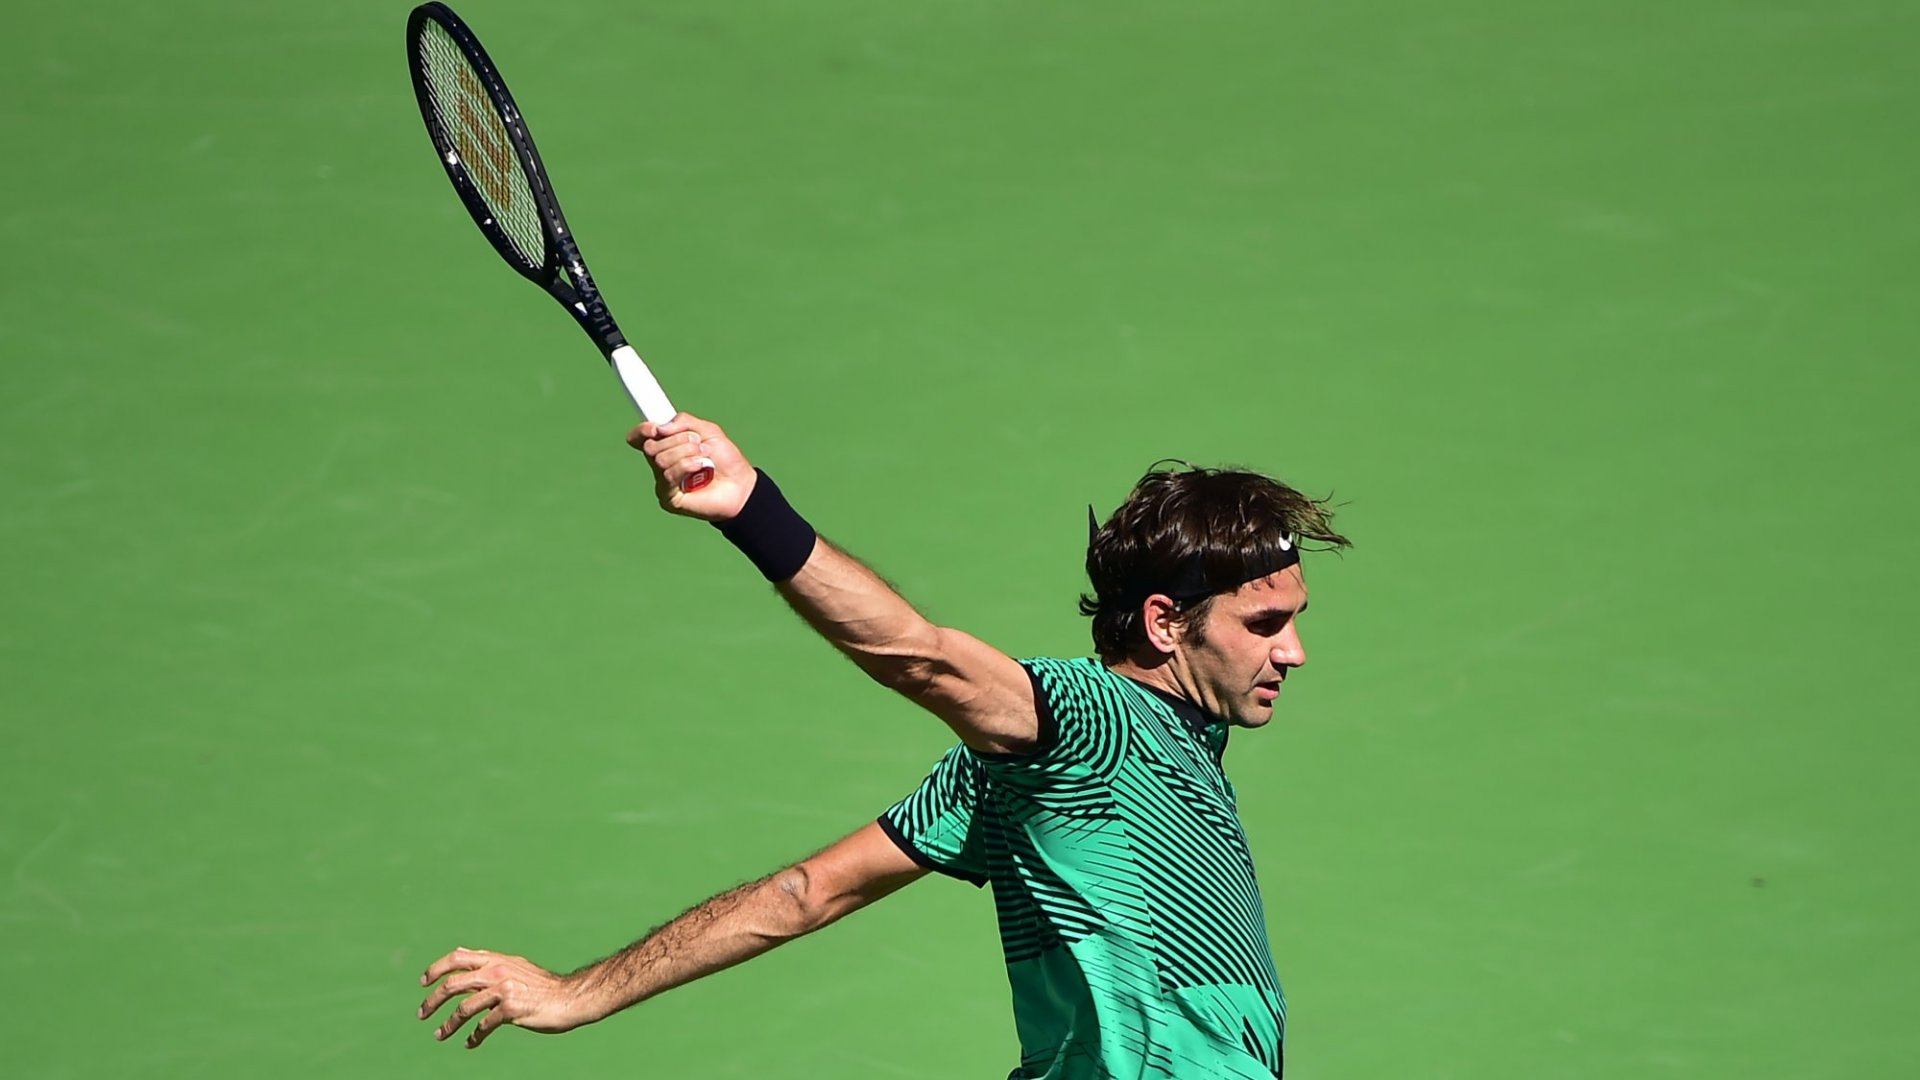 5 Surprising Lessons We Can Learn from Roger Federer, Oldest and Wisest of Tennis Champions